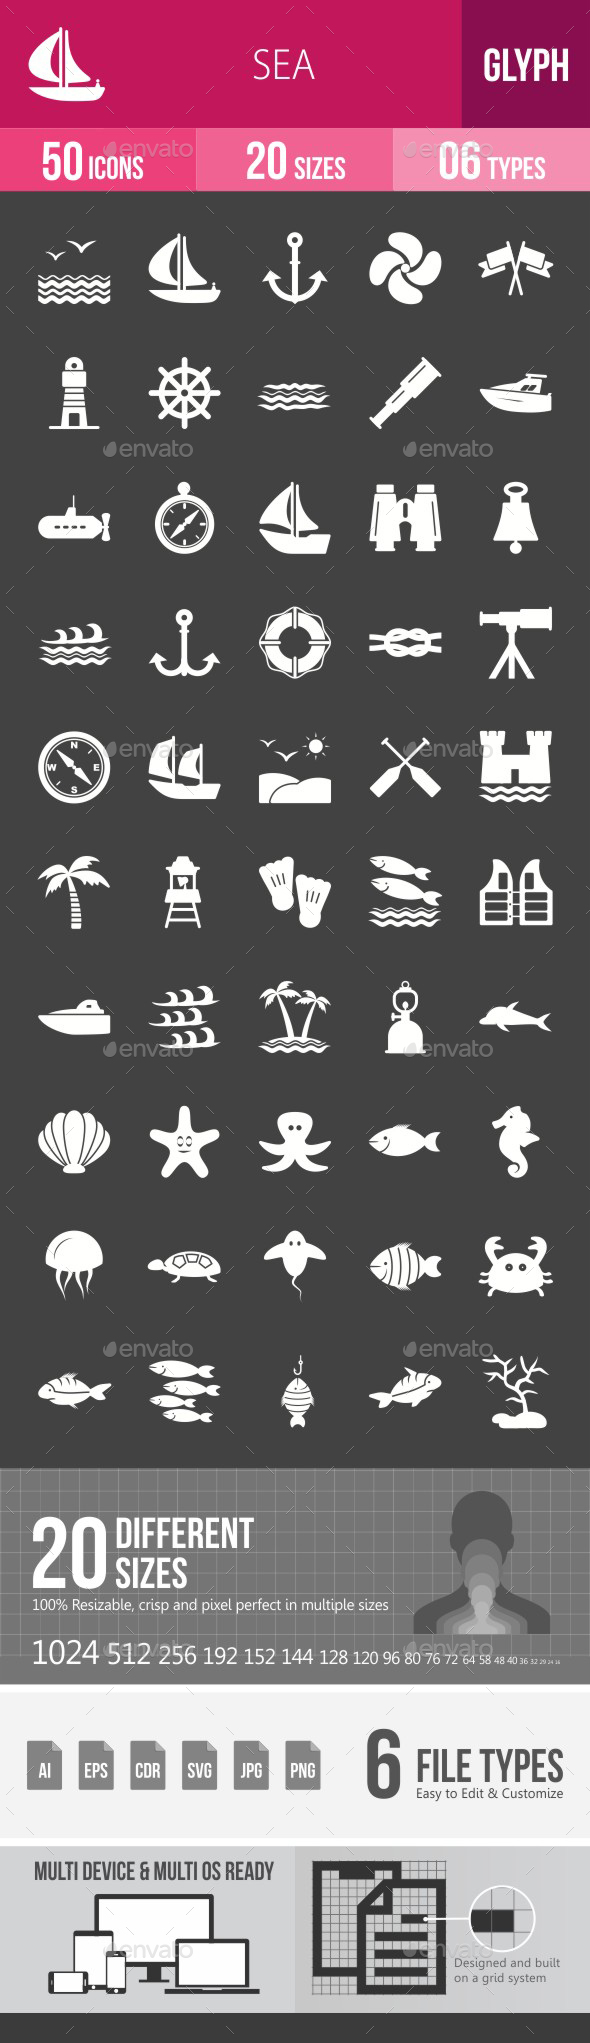 Sea Glyph Inverted Icons - Icons